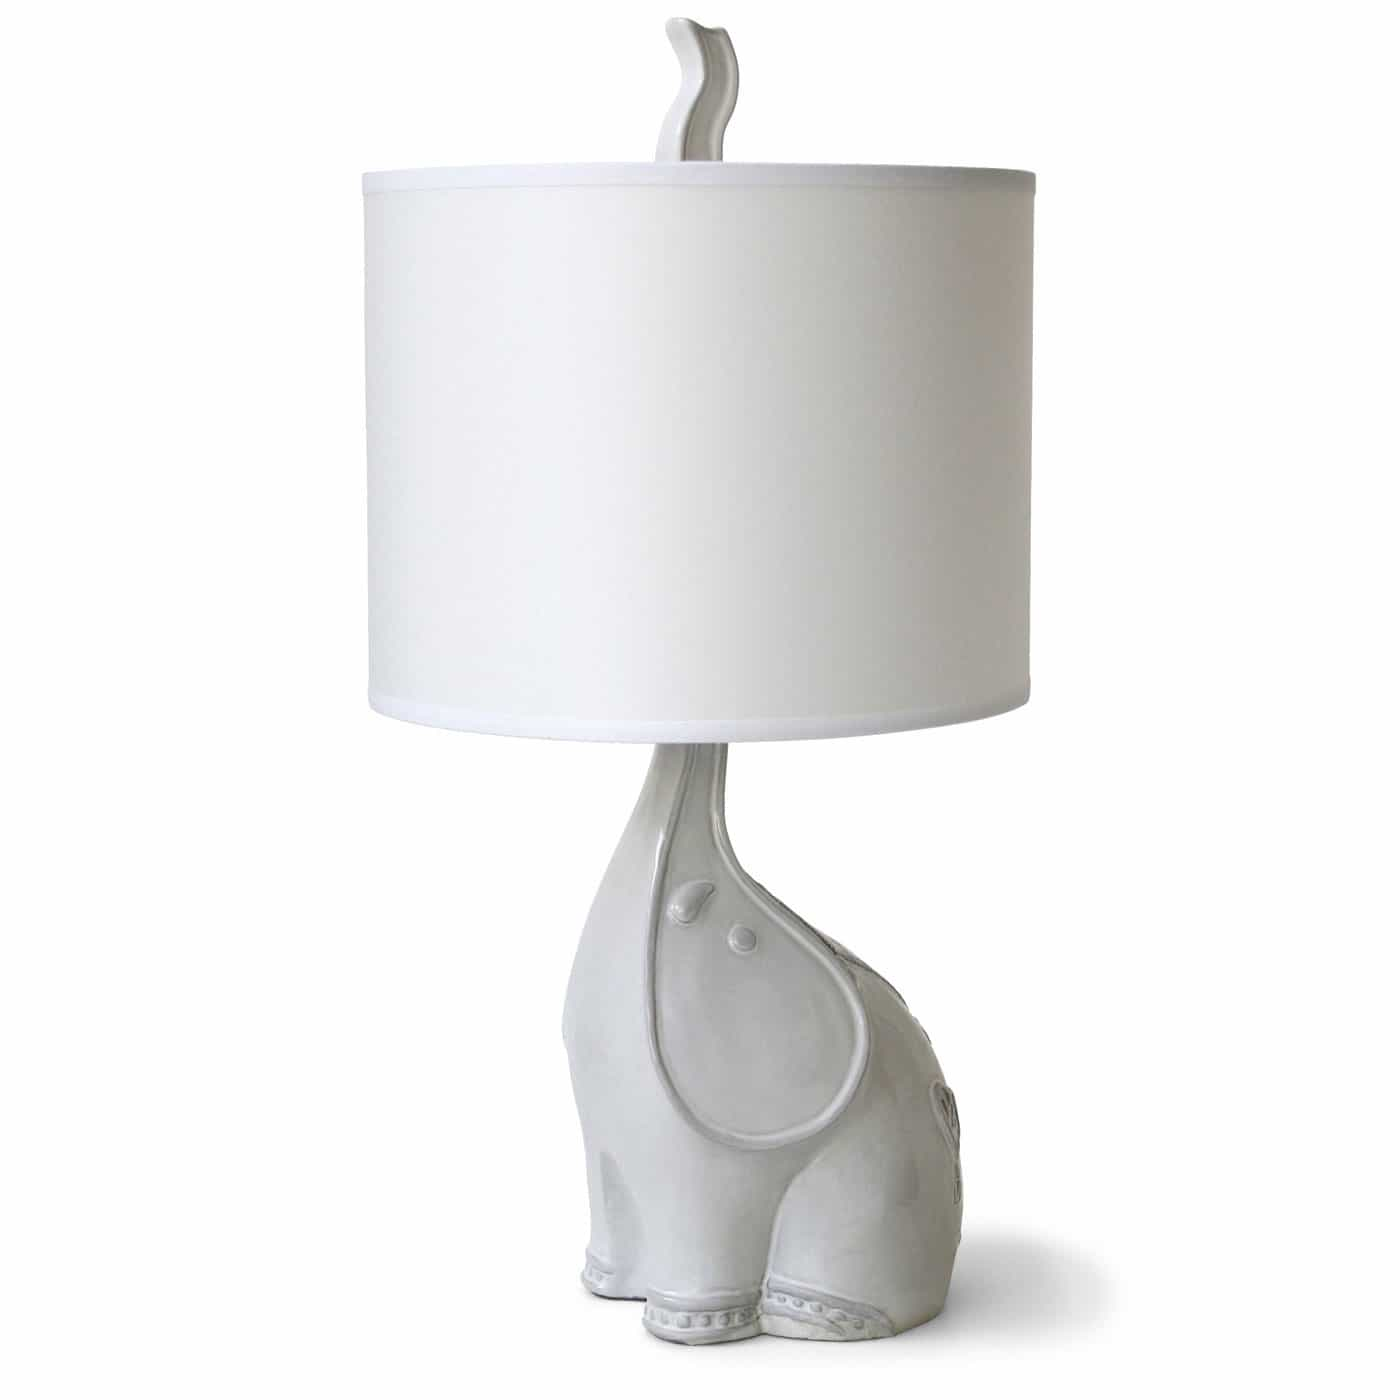 The look for less diy jonathan adler lamp bugaboocity - Jonathan adler elephant ...